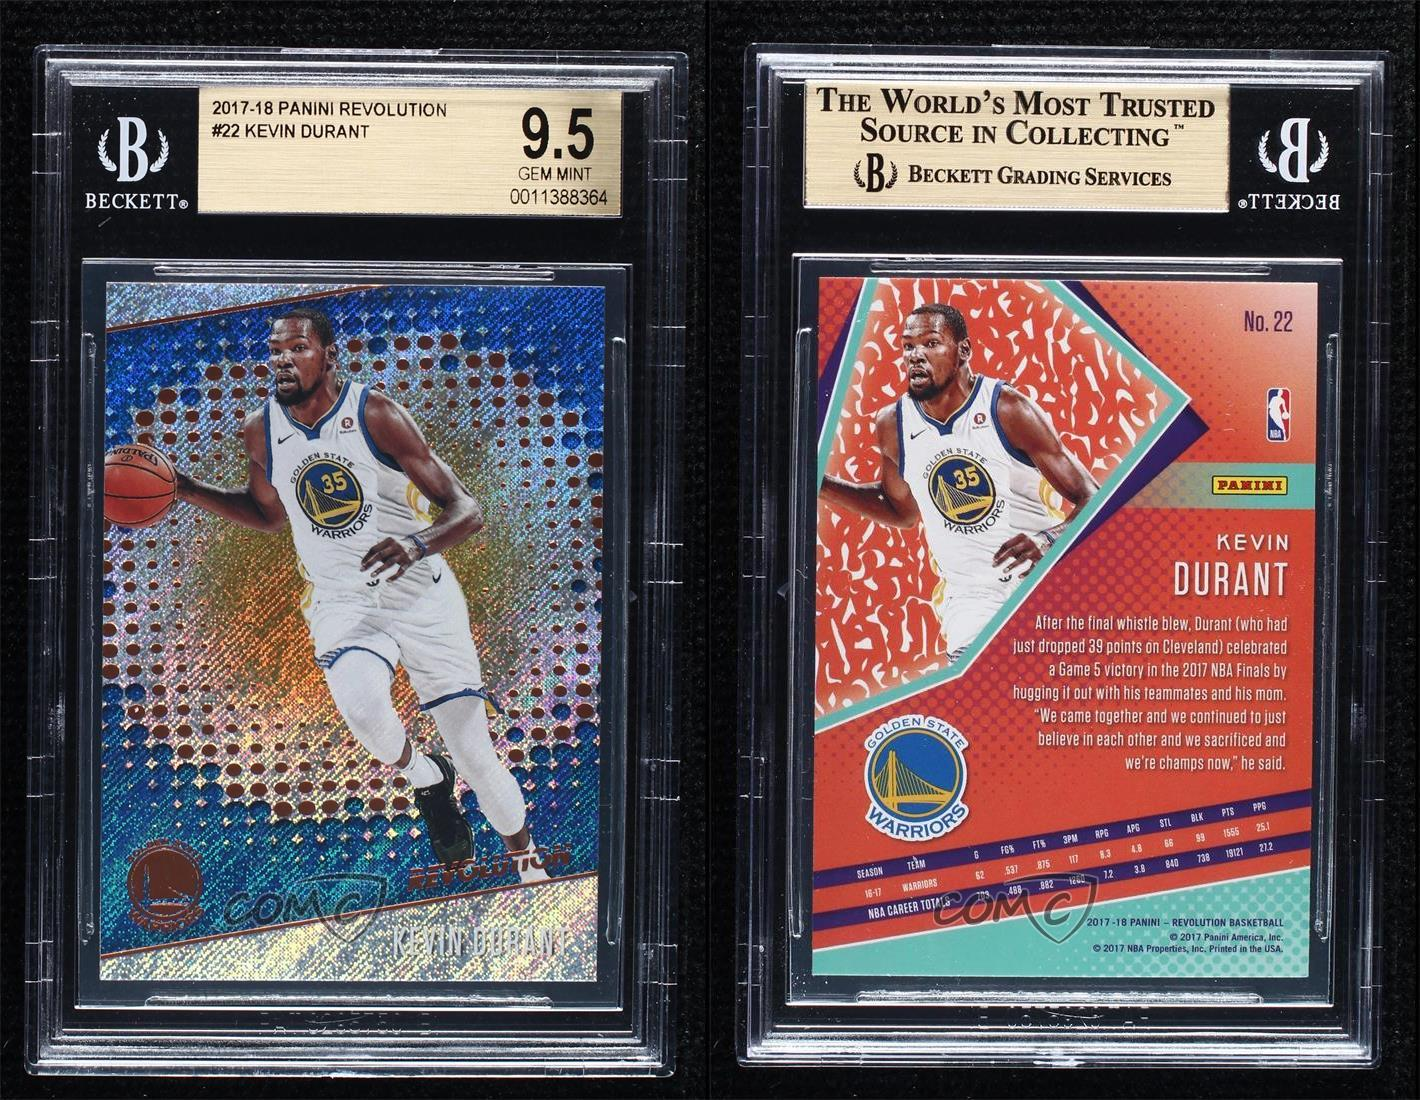 2017-18 Panini Revolution #22 Kevin Durant Warriors Trading Cards ...